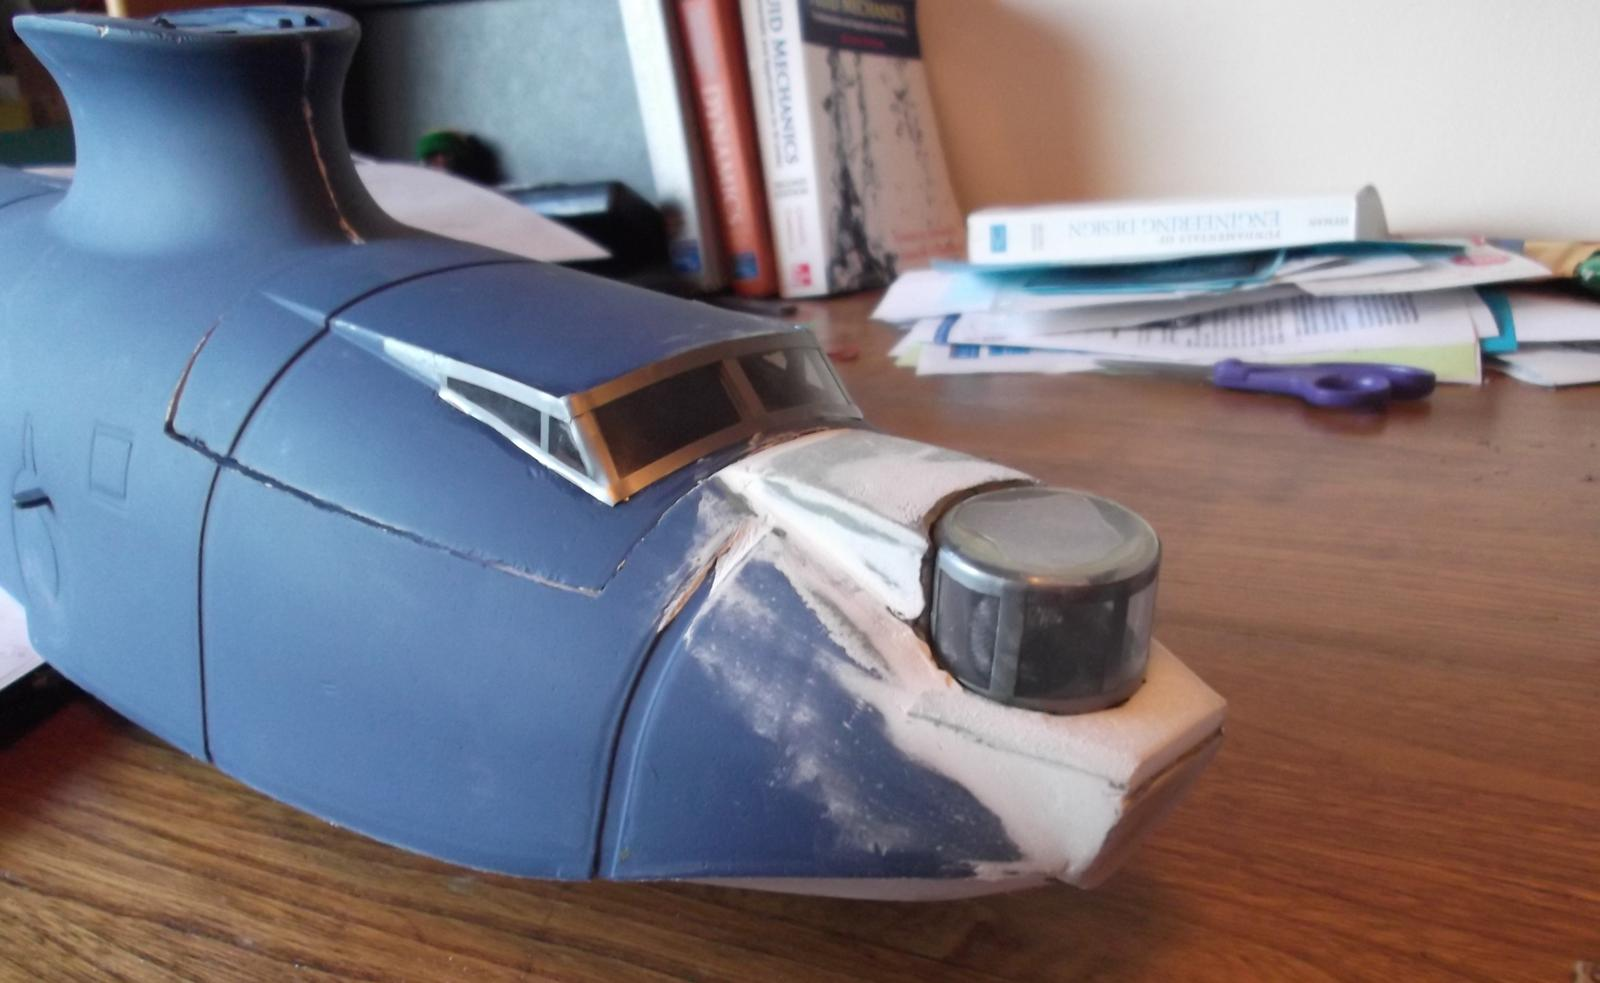 New nose with box features made of depron, a crest shaped wood plate at the front and a random piece of thermoplastic packaging for the turret.